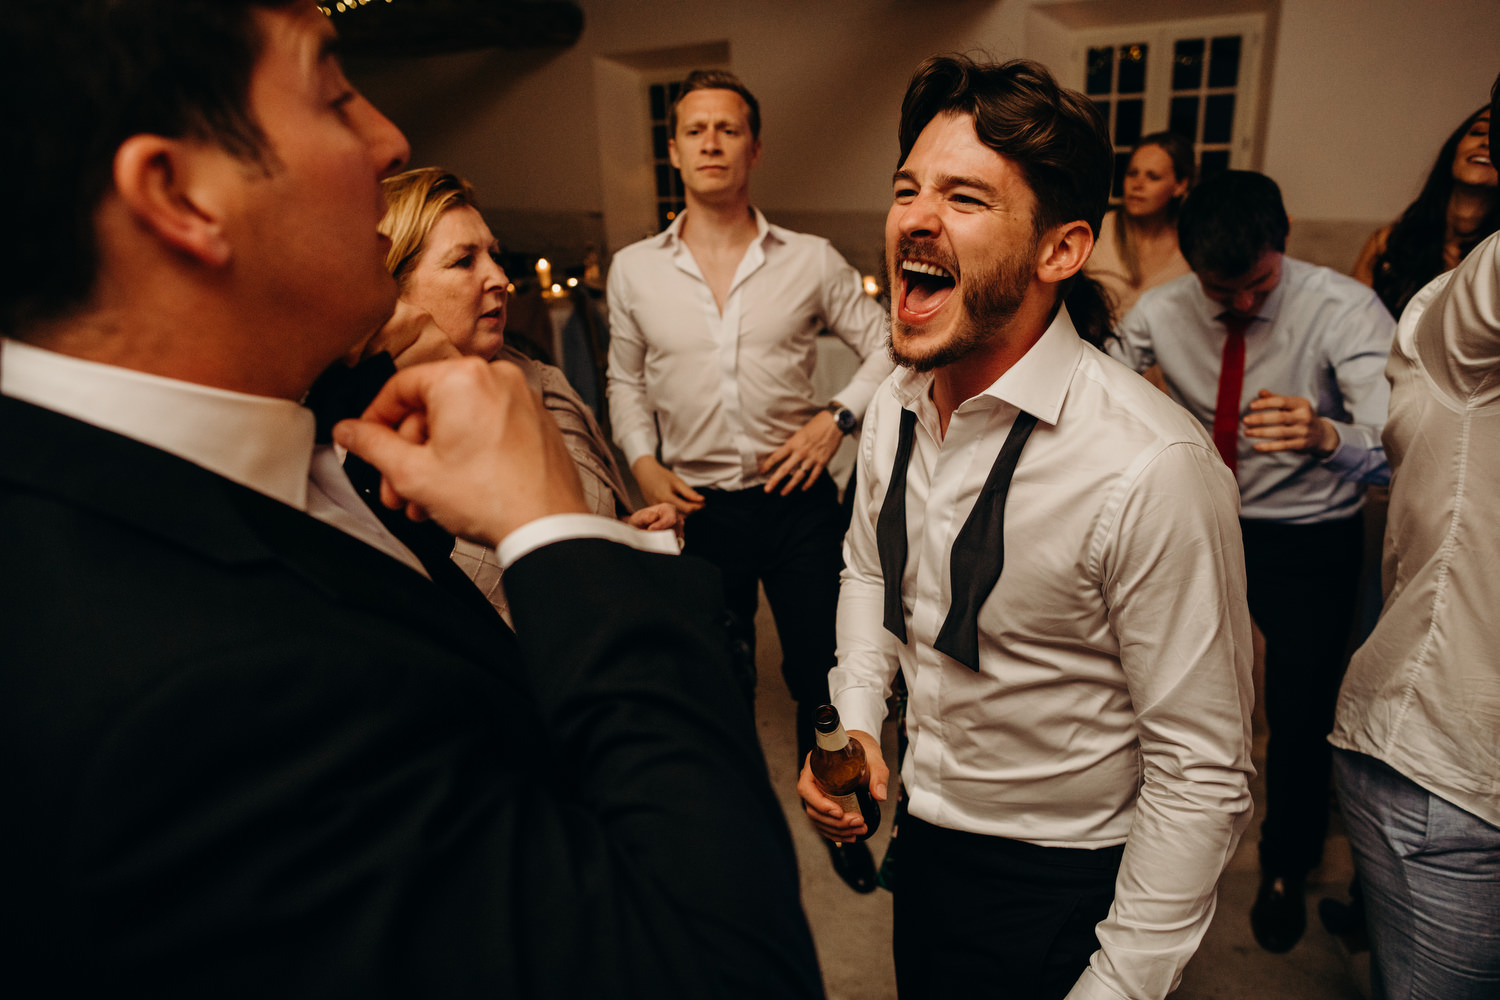 groom singing